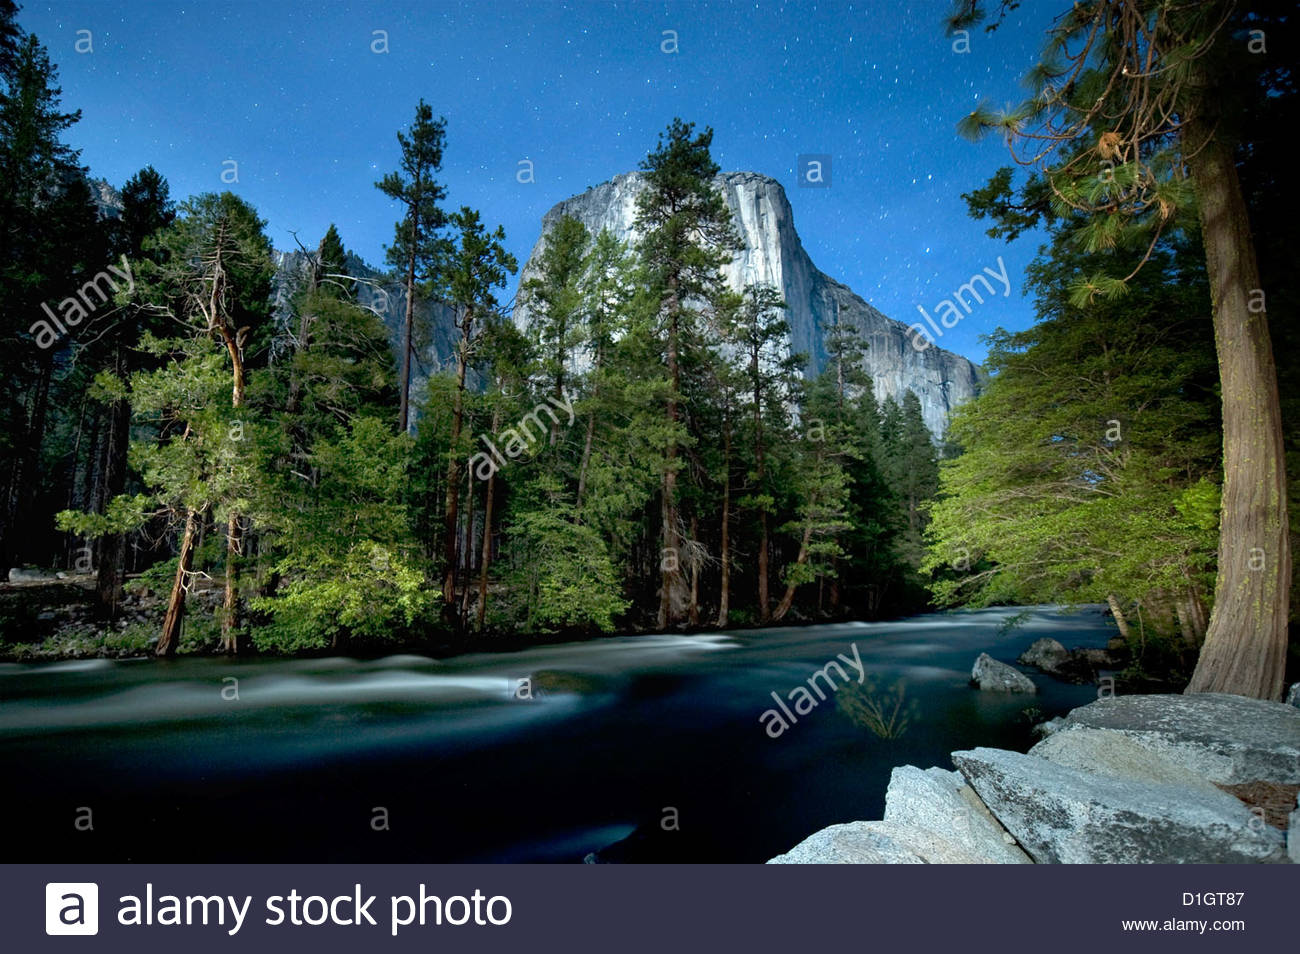 El Capitan mountain with river and night sky with stars, Yosemite National Park, Yosemite, California, United States - Stock Image